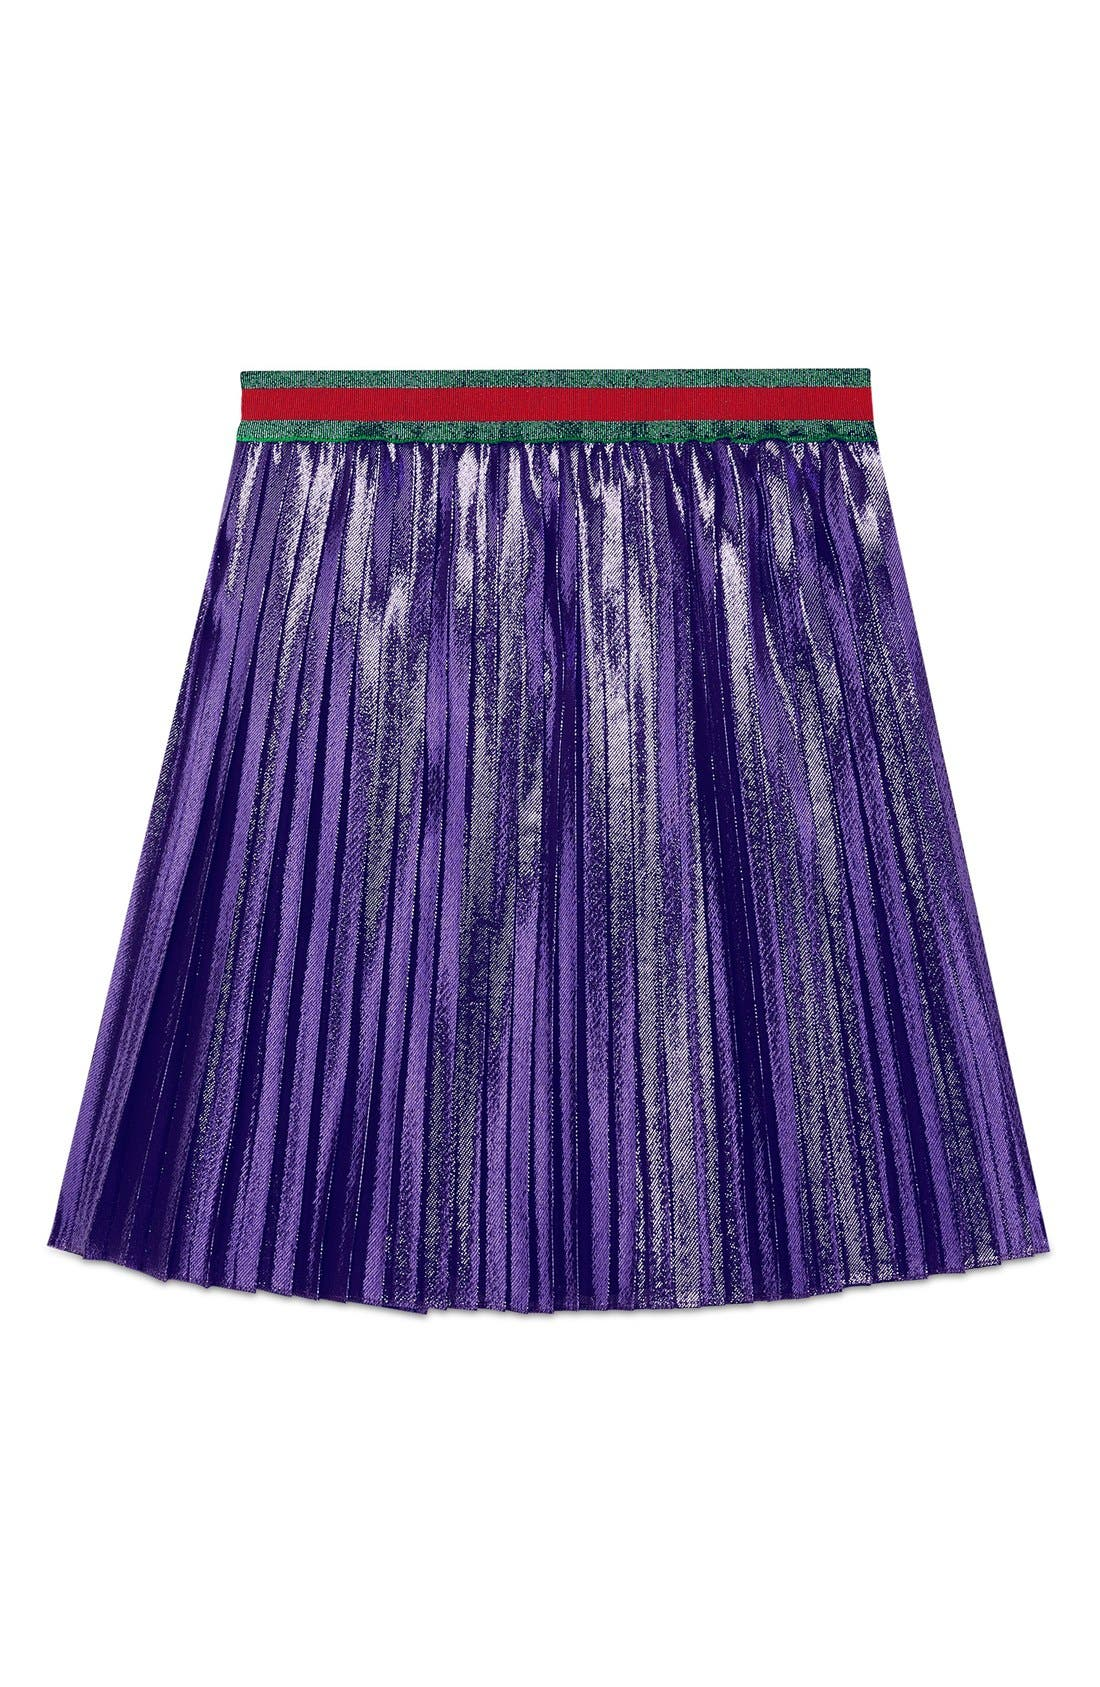 GUCCI Pleated Purple Lamé Skirt